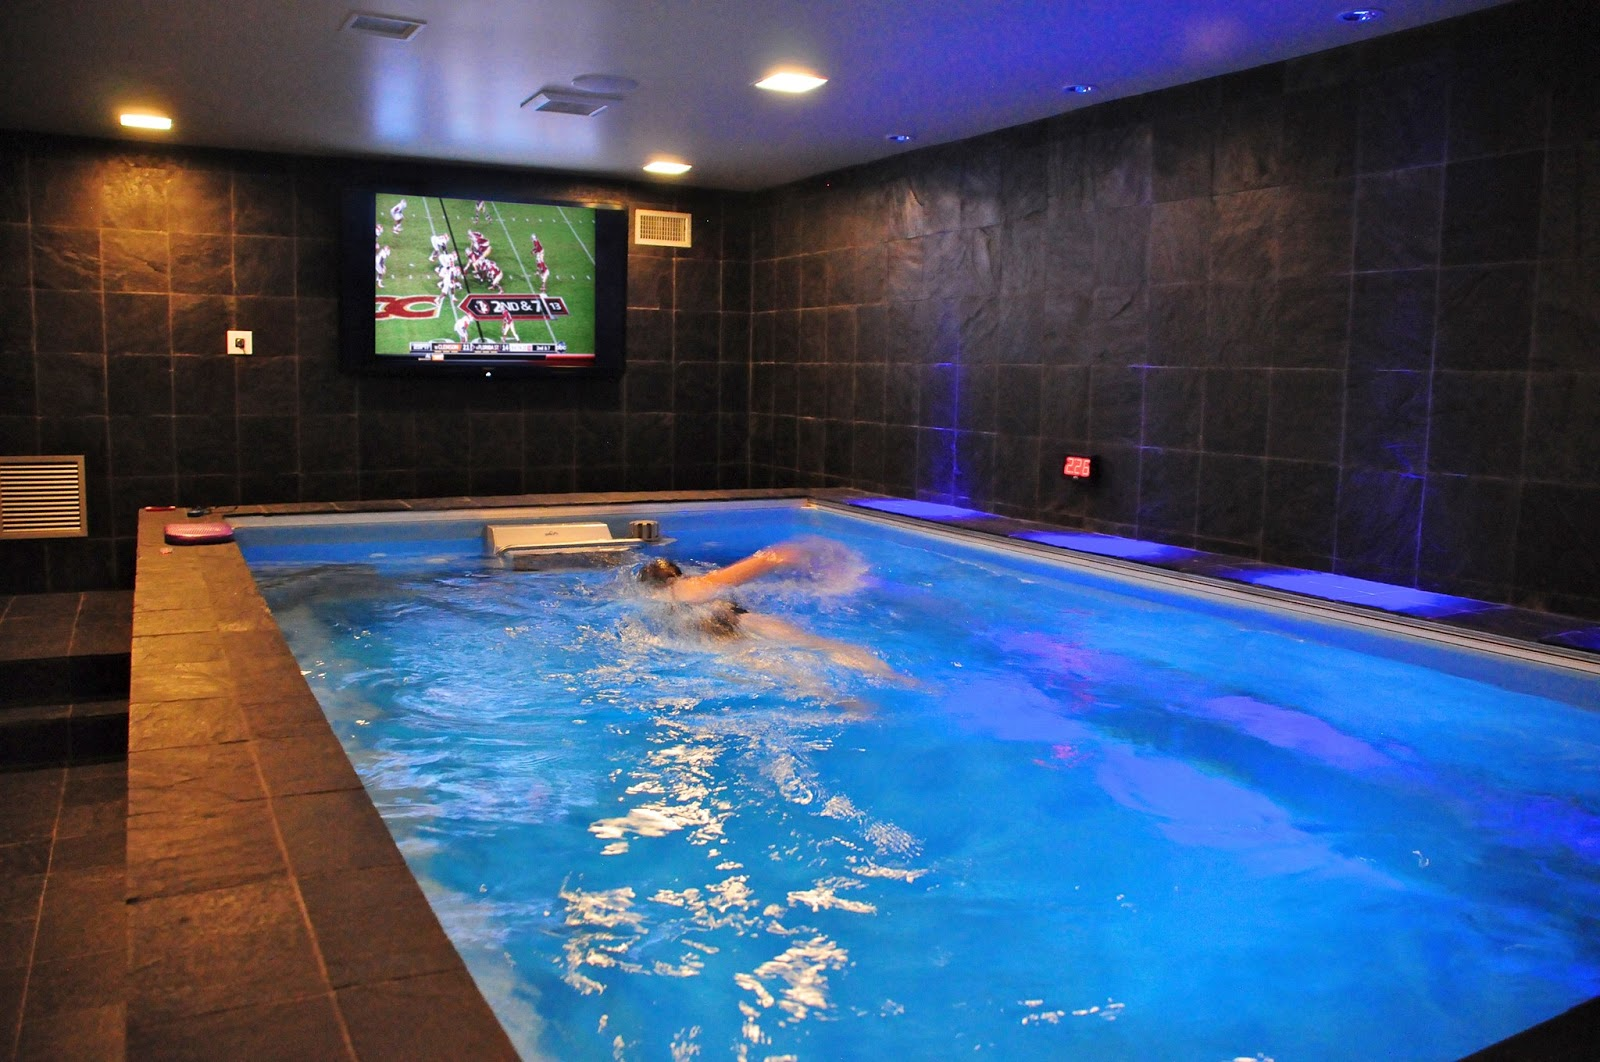 Inside Pool Cave 7 mighty man caves for men who love swimming | endless pools